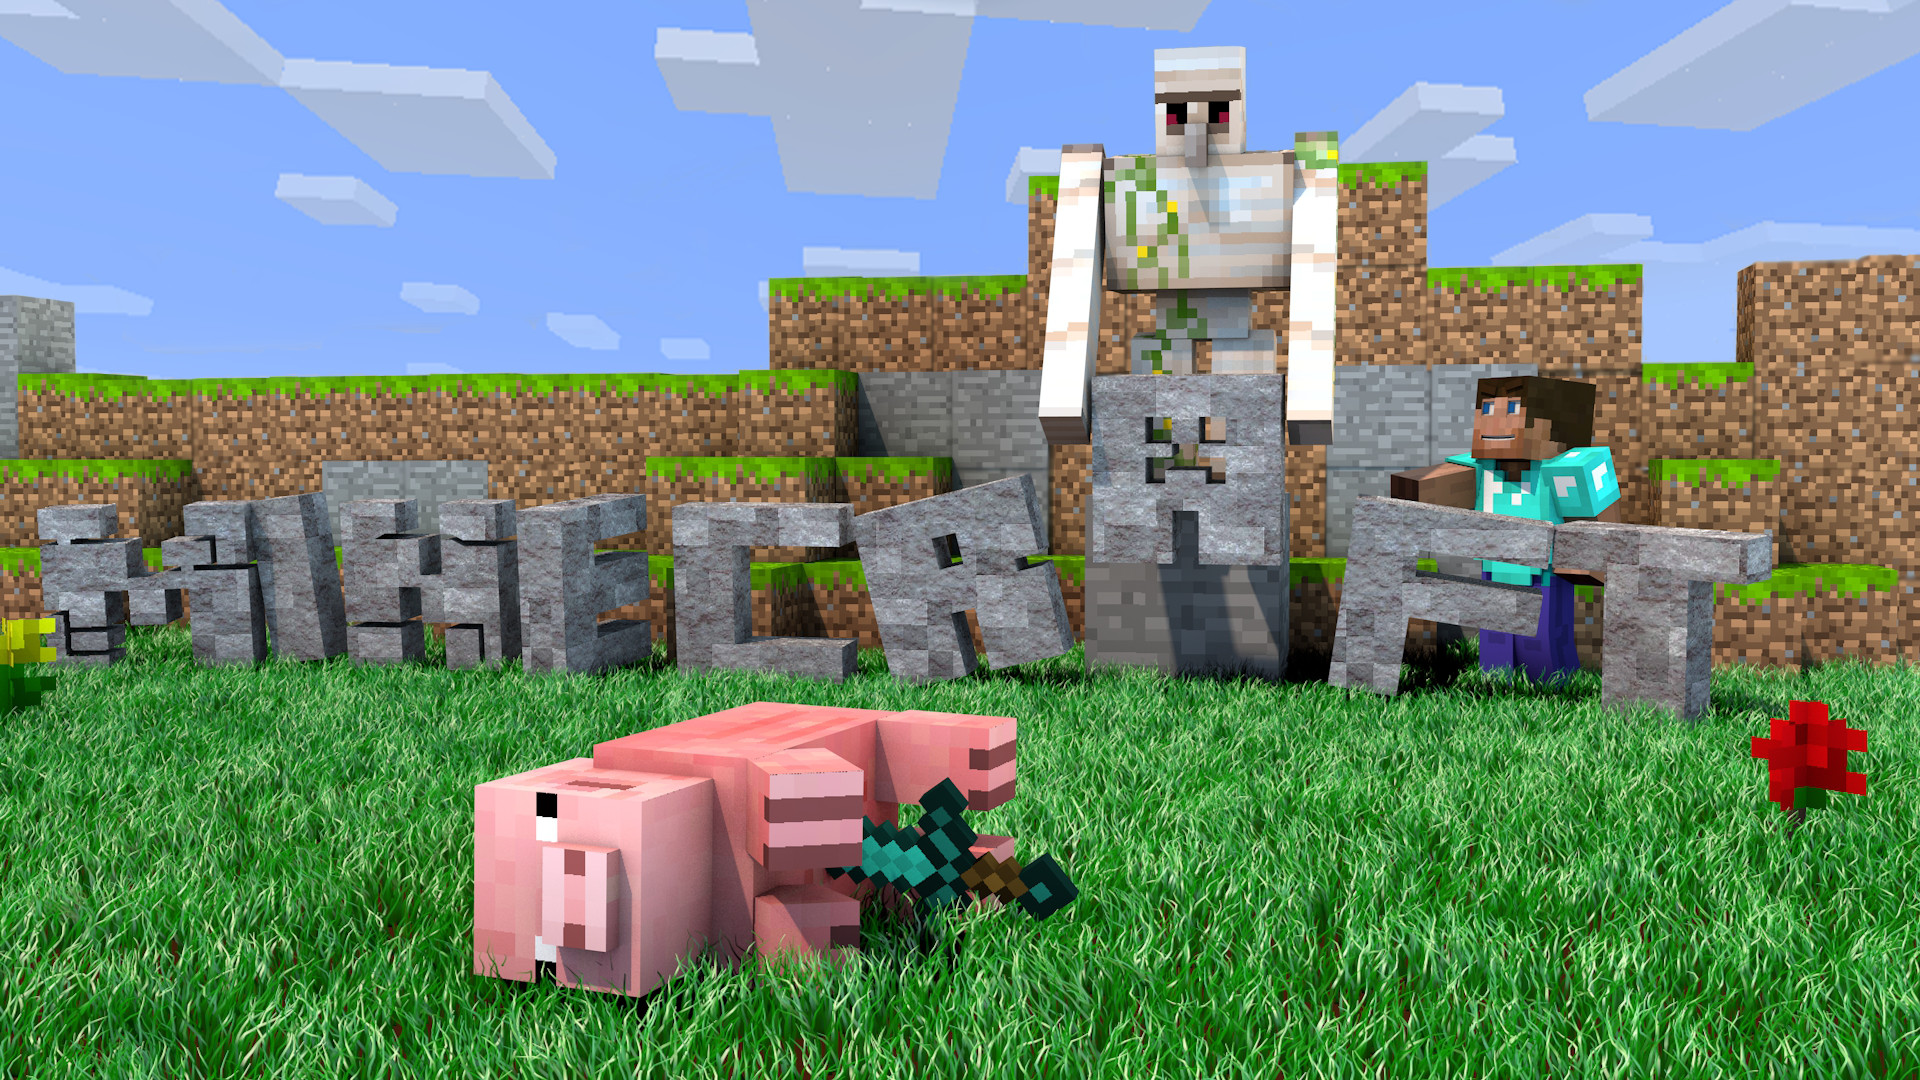 Res: 1920x1080, Minecraft Baby Pig Wallpaper Images Pictures Becuo